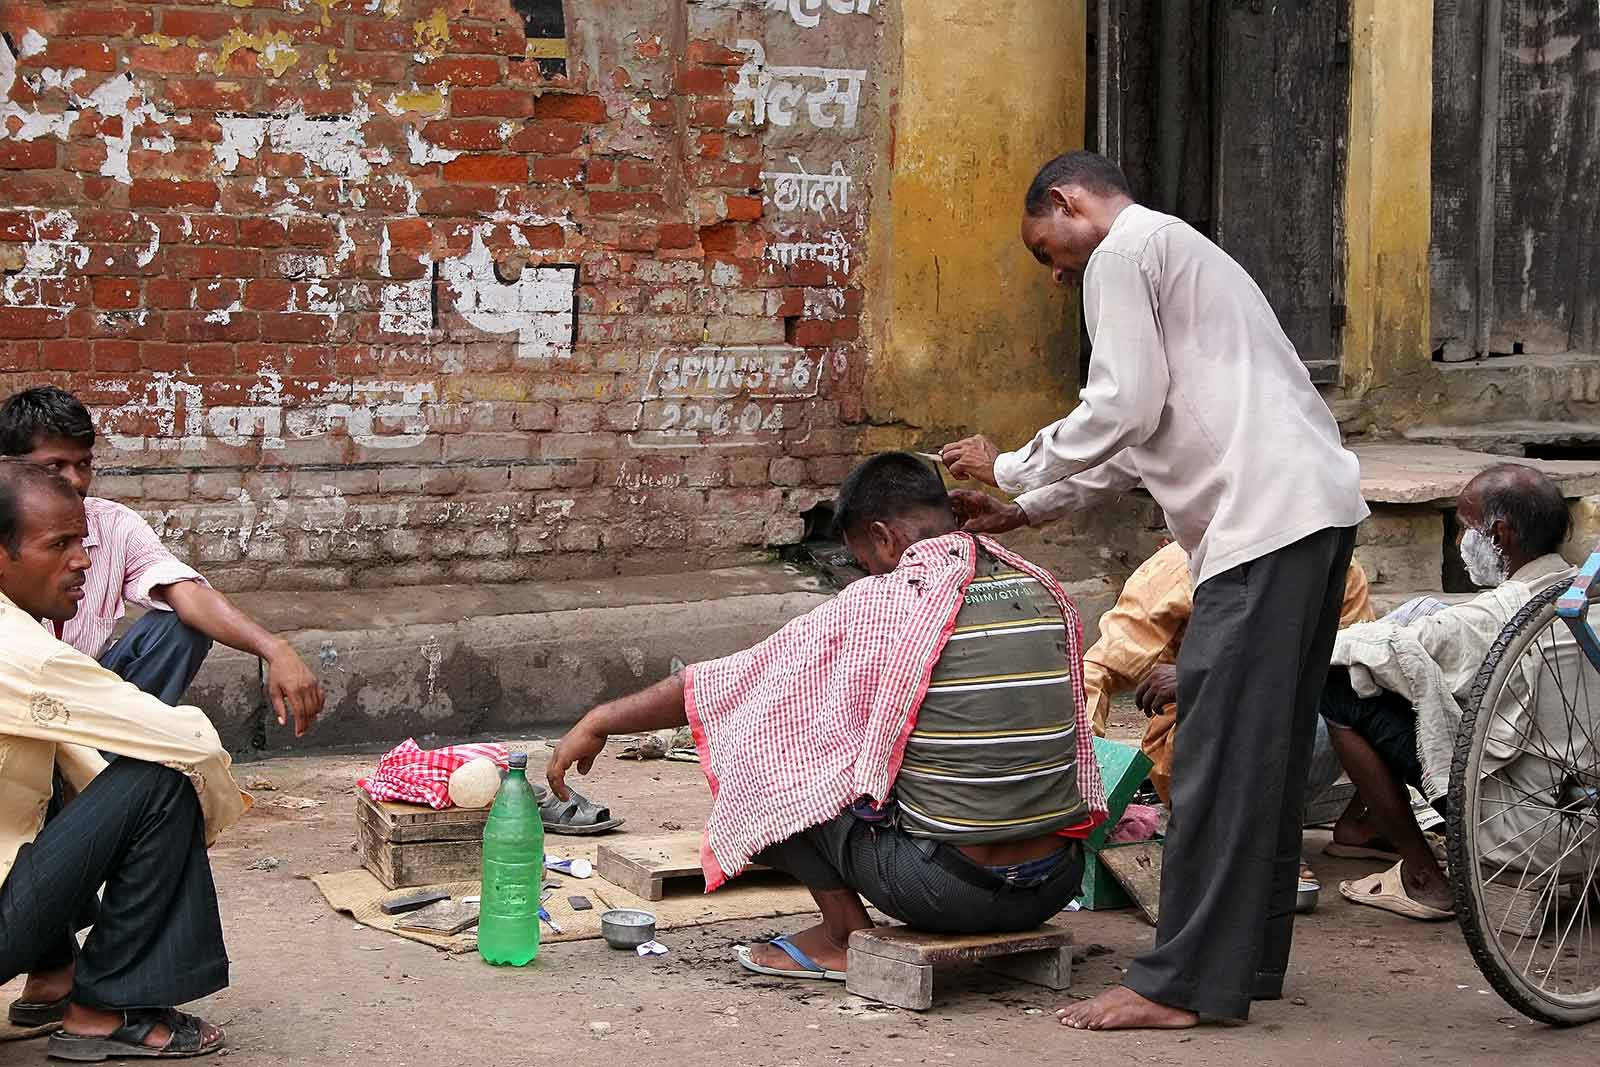 A barber shop in the streets of Varanasi, India.